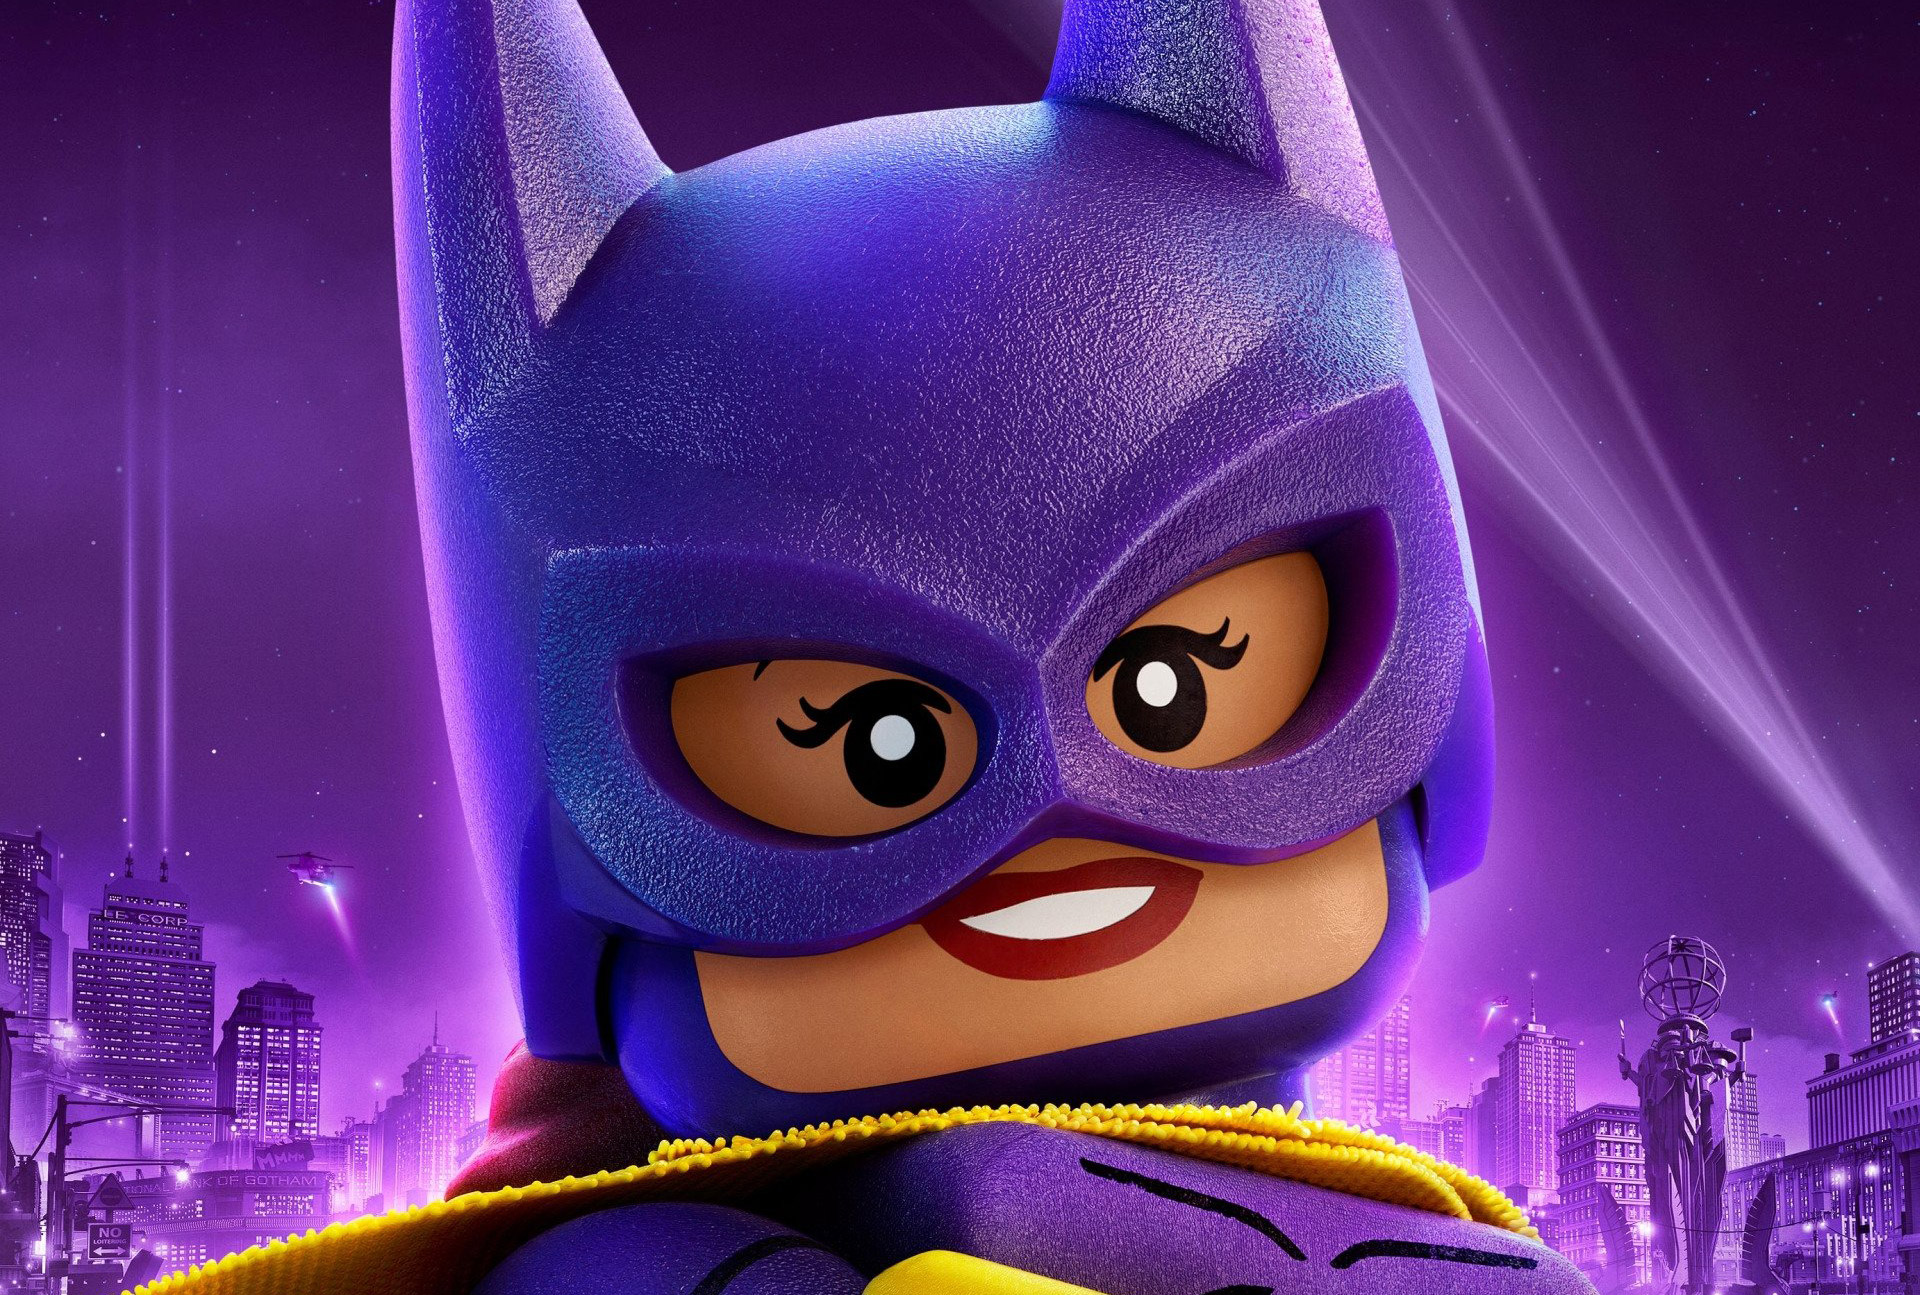 Cute Anime Girl Wallpaper Hd For Android Batgirl The Lego Batman Hd Movies 4k Wallpapers Images